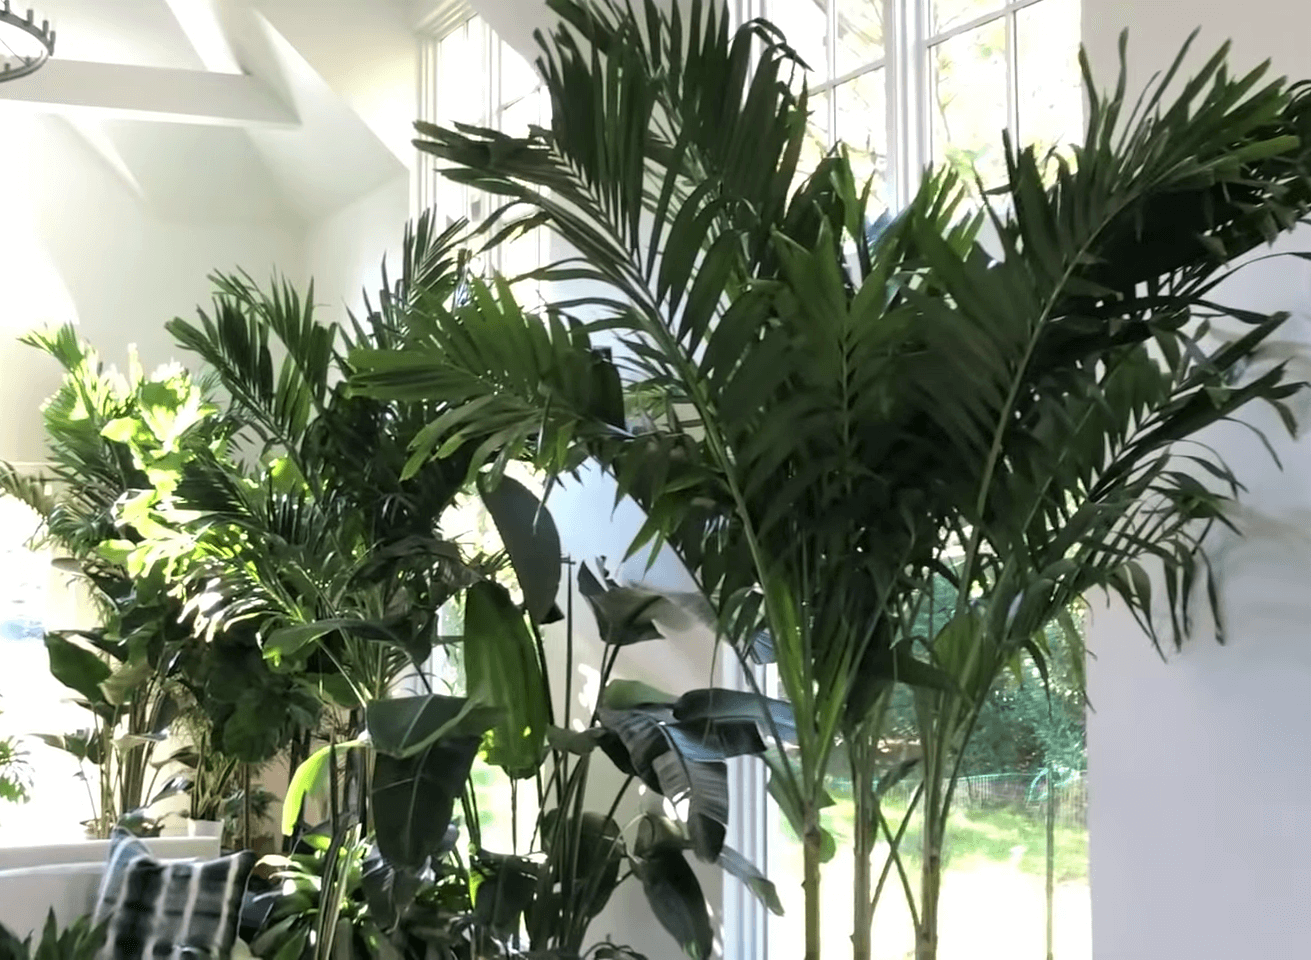 the large indoor plants